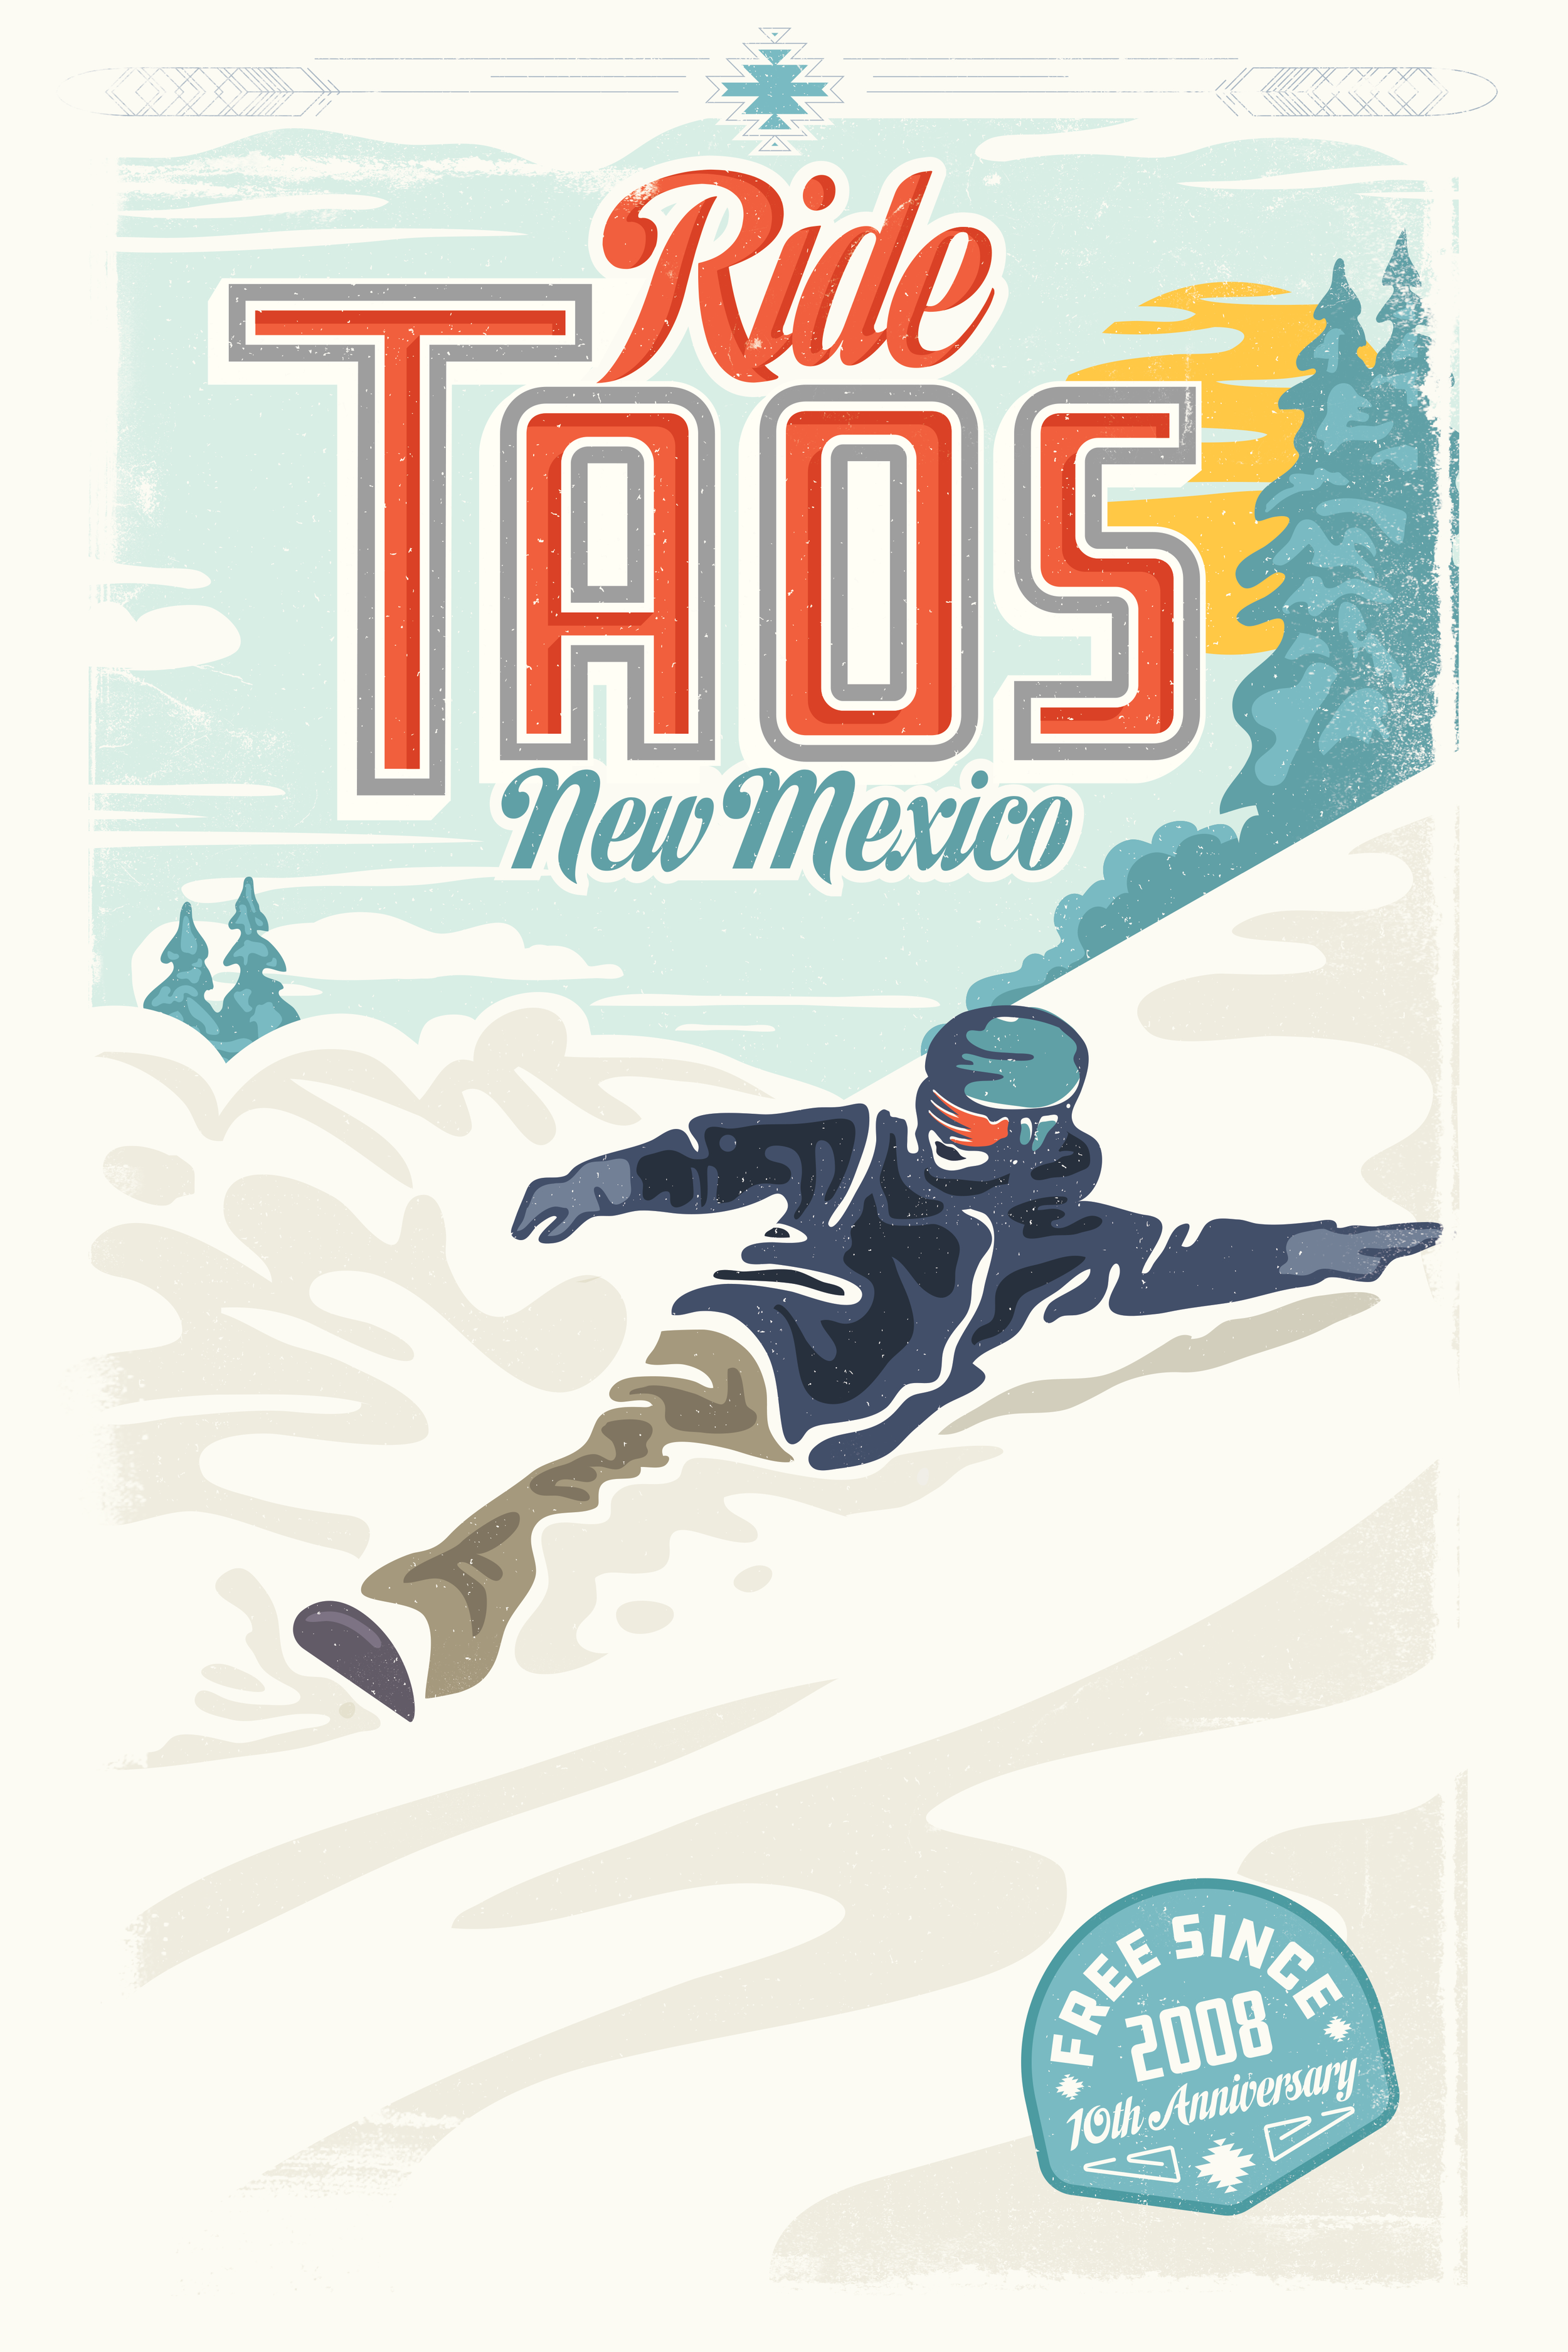 Taos_Poster_v4_Page_2.png